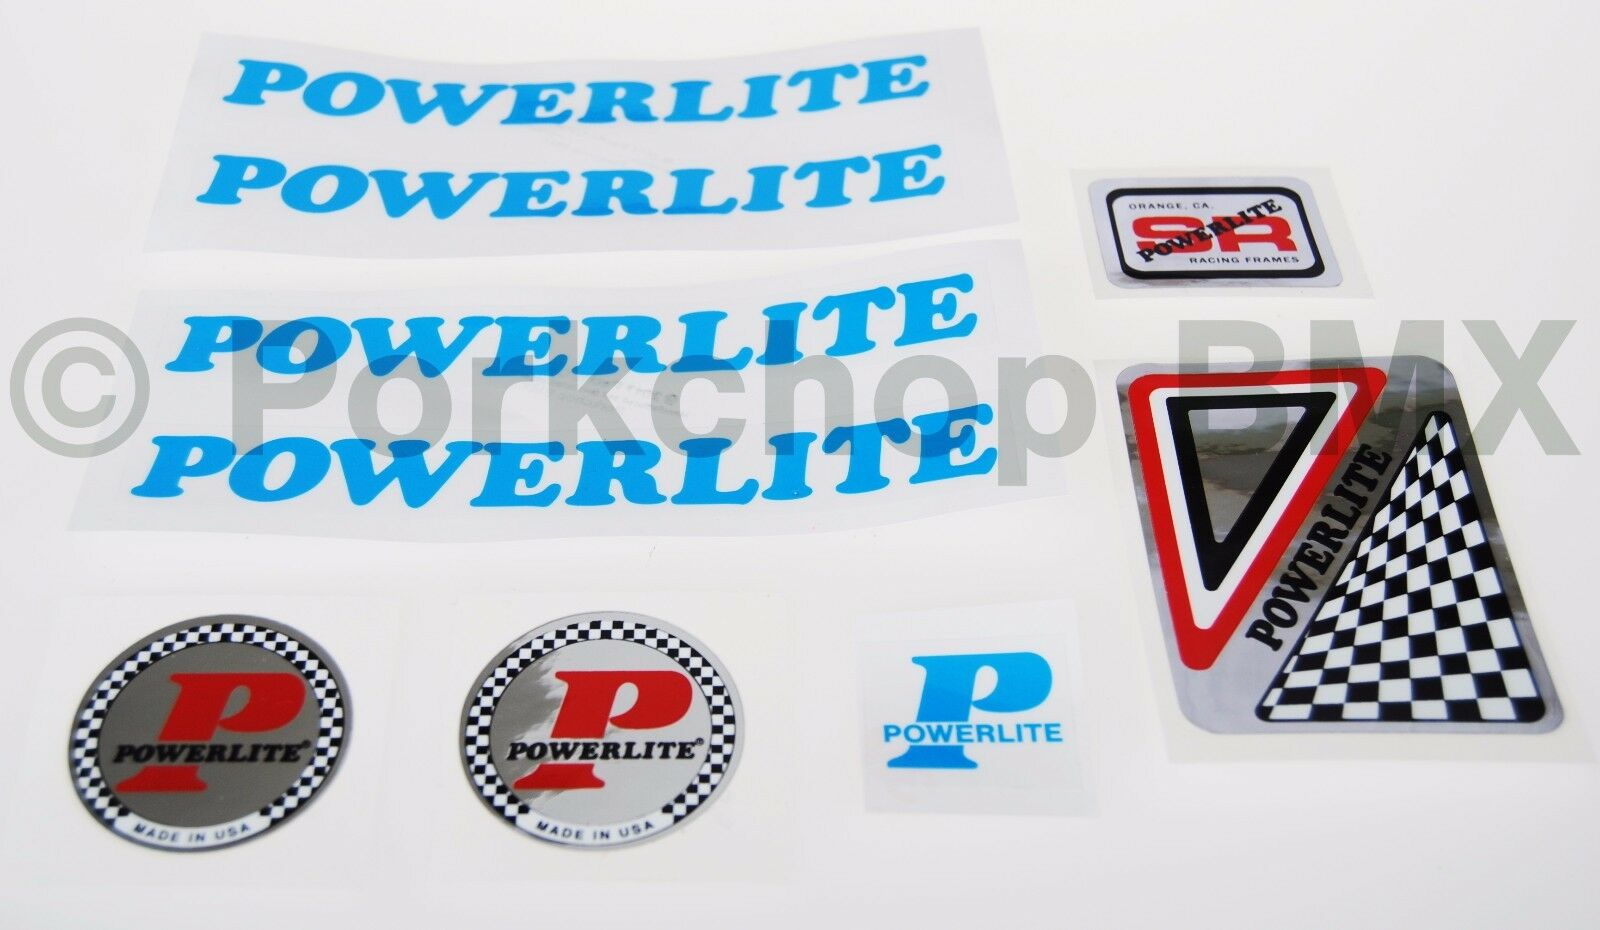 Officially licensed 1978-83 Powerlite old school BMX decal SET SOLID LIGHT blueE